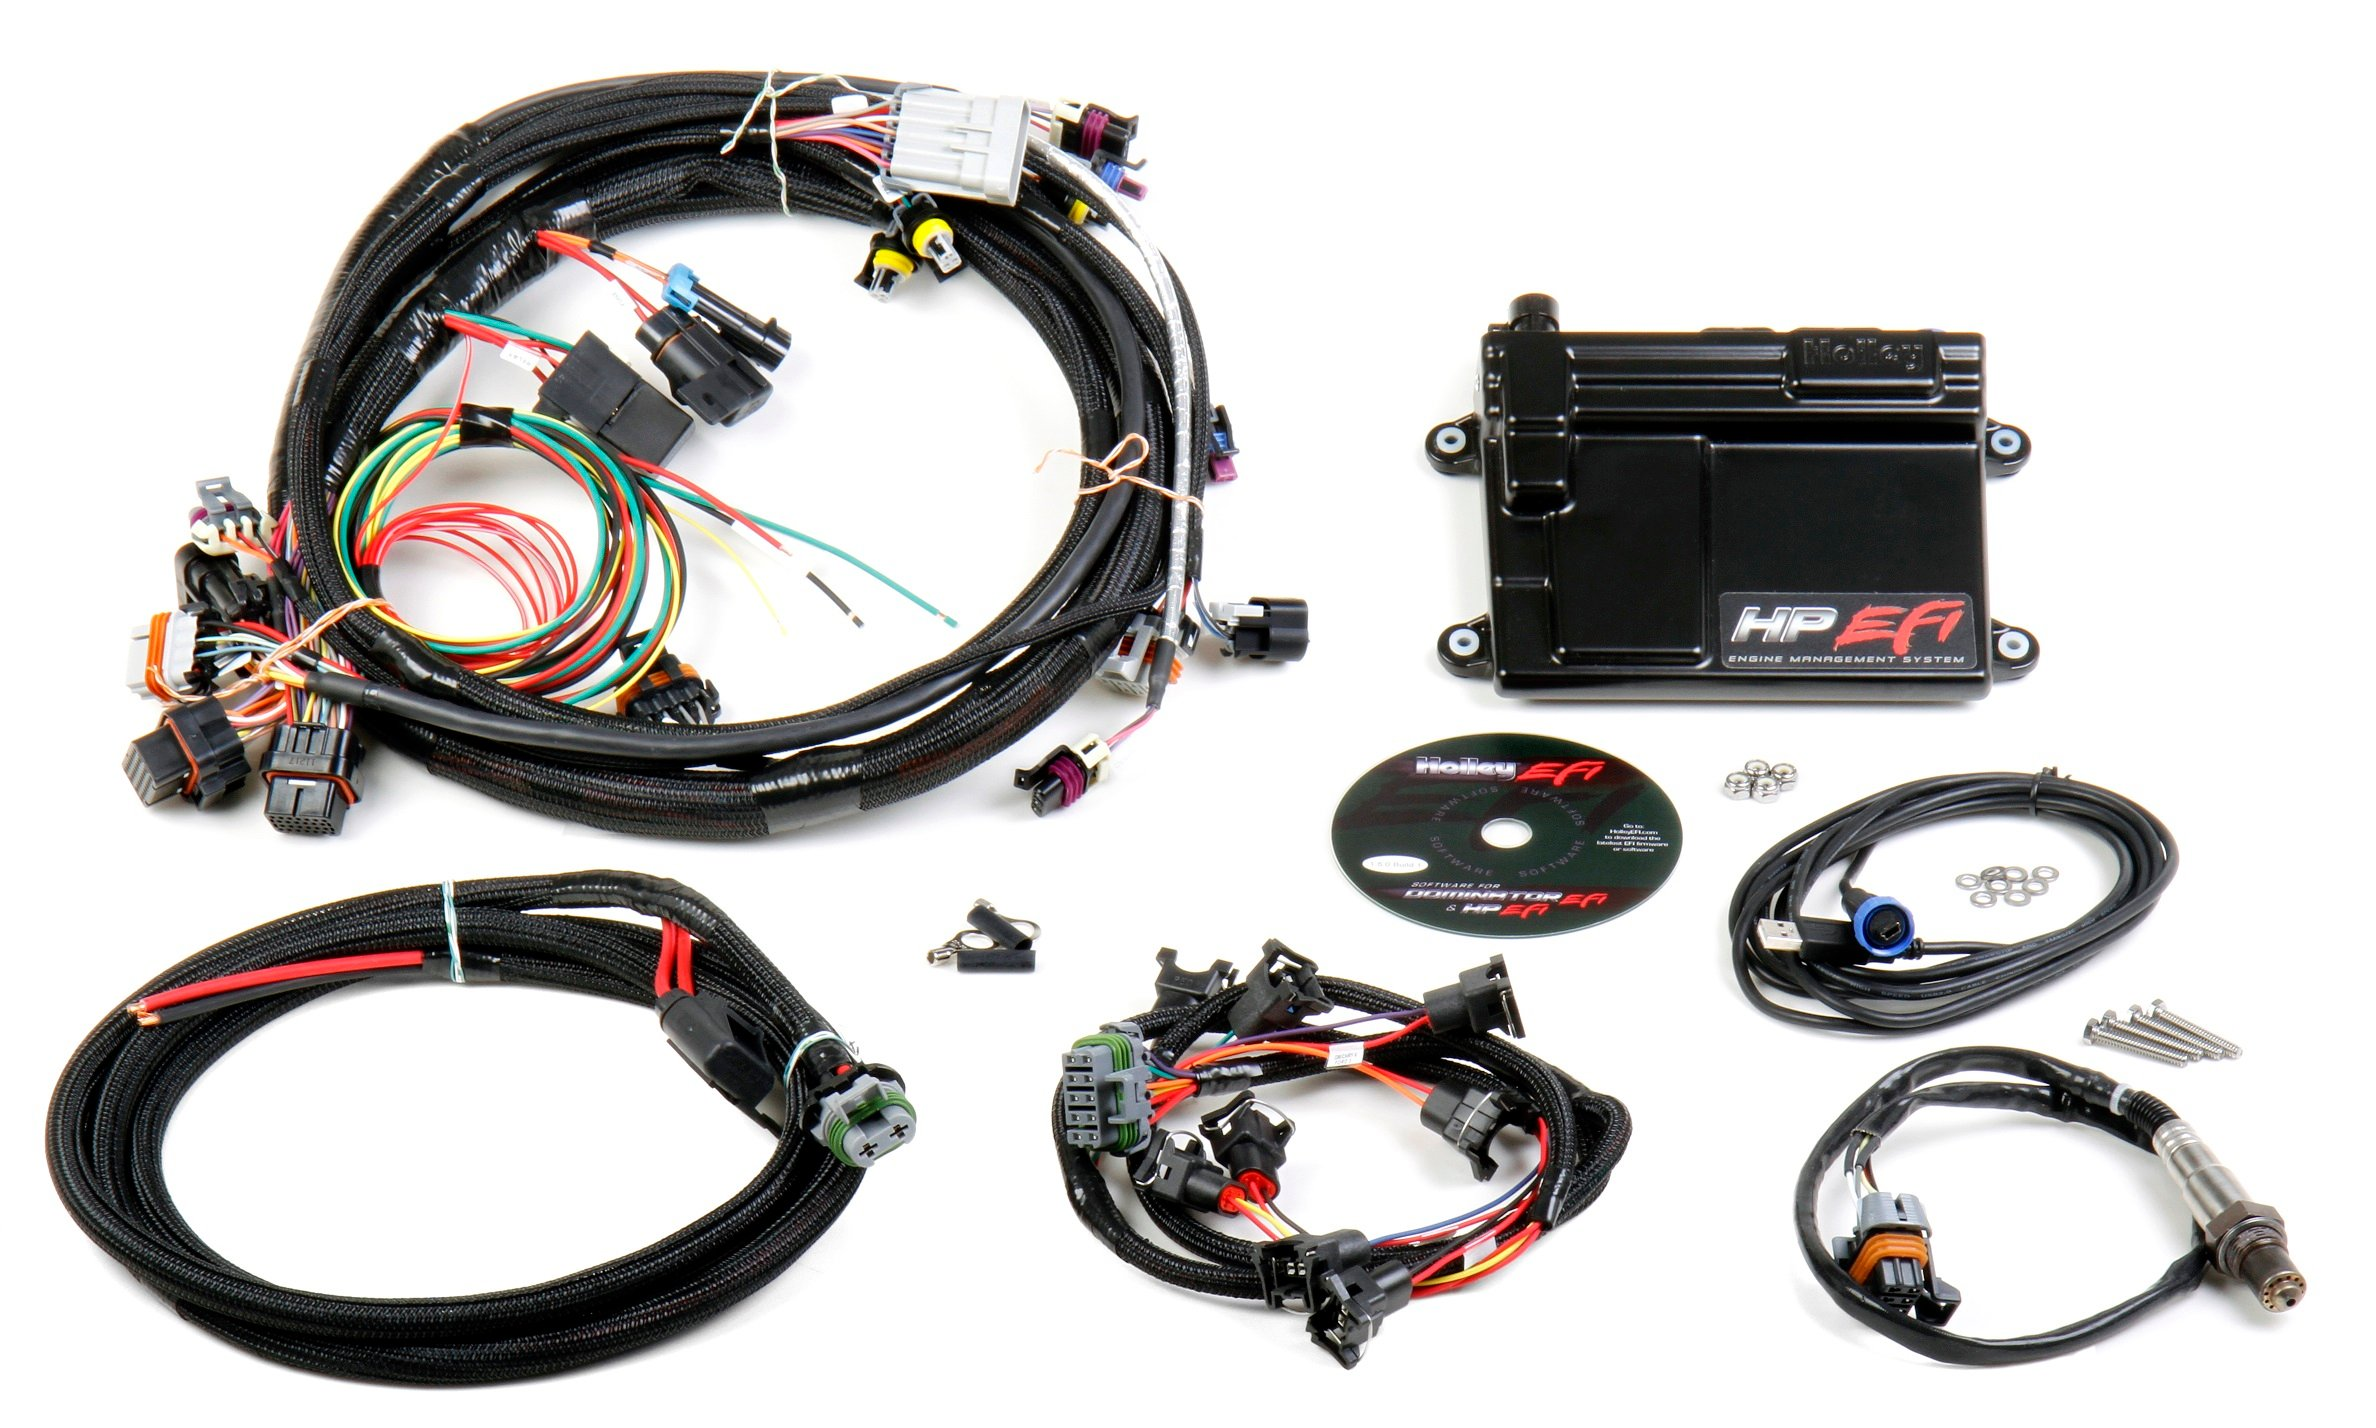 holley efi 550 602 hp efi ecu harness kits rh holley com LS3 Engine Wiring Harness GM Wiring Harness Connectors